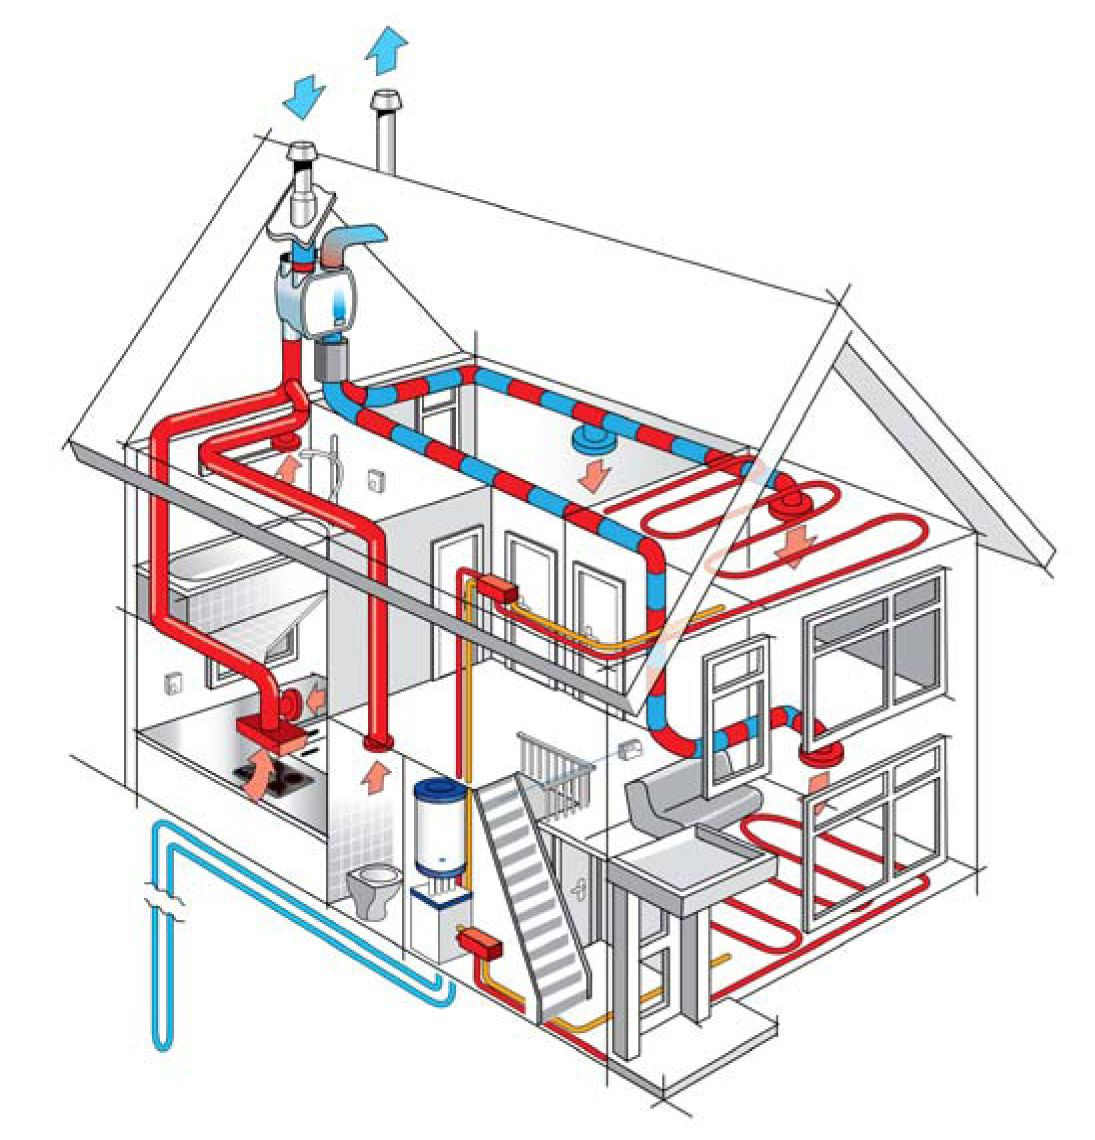 hight resolution of heat recovery ventilator diagram google search